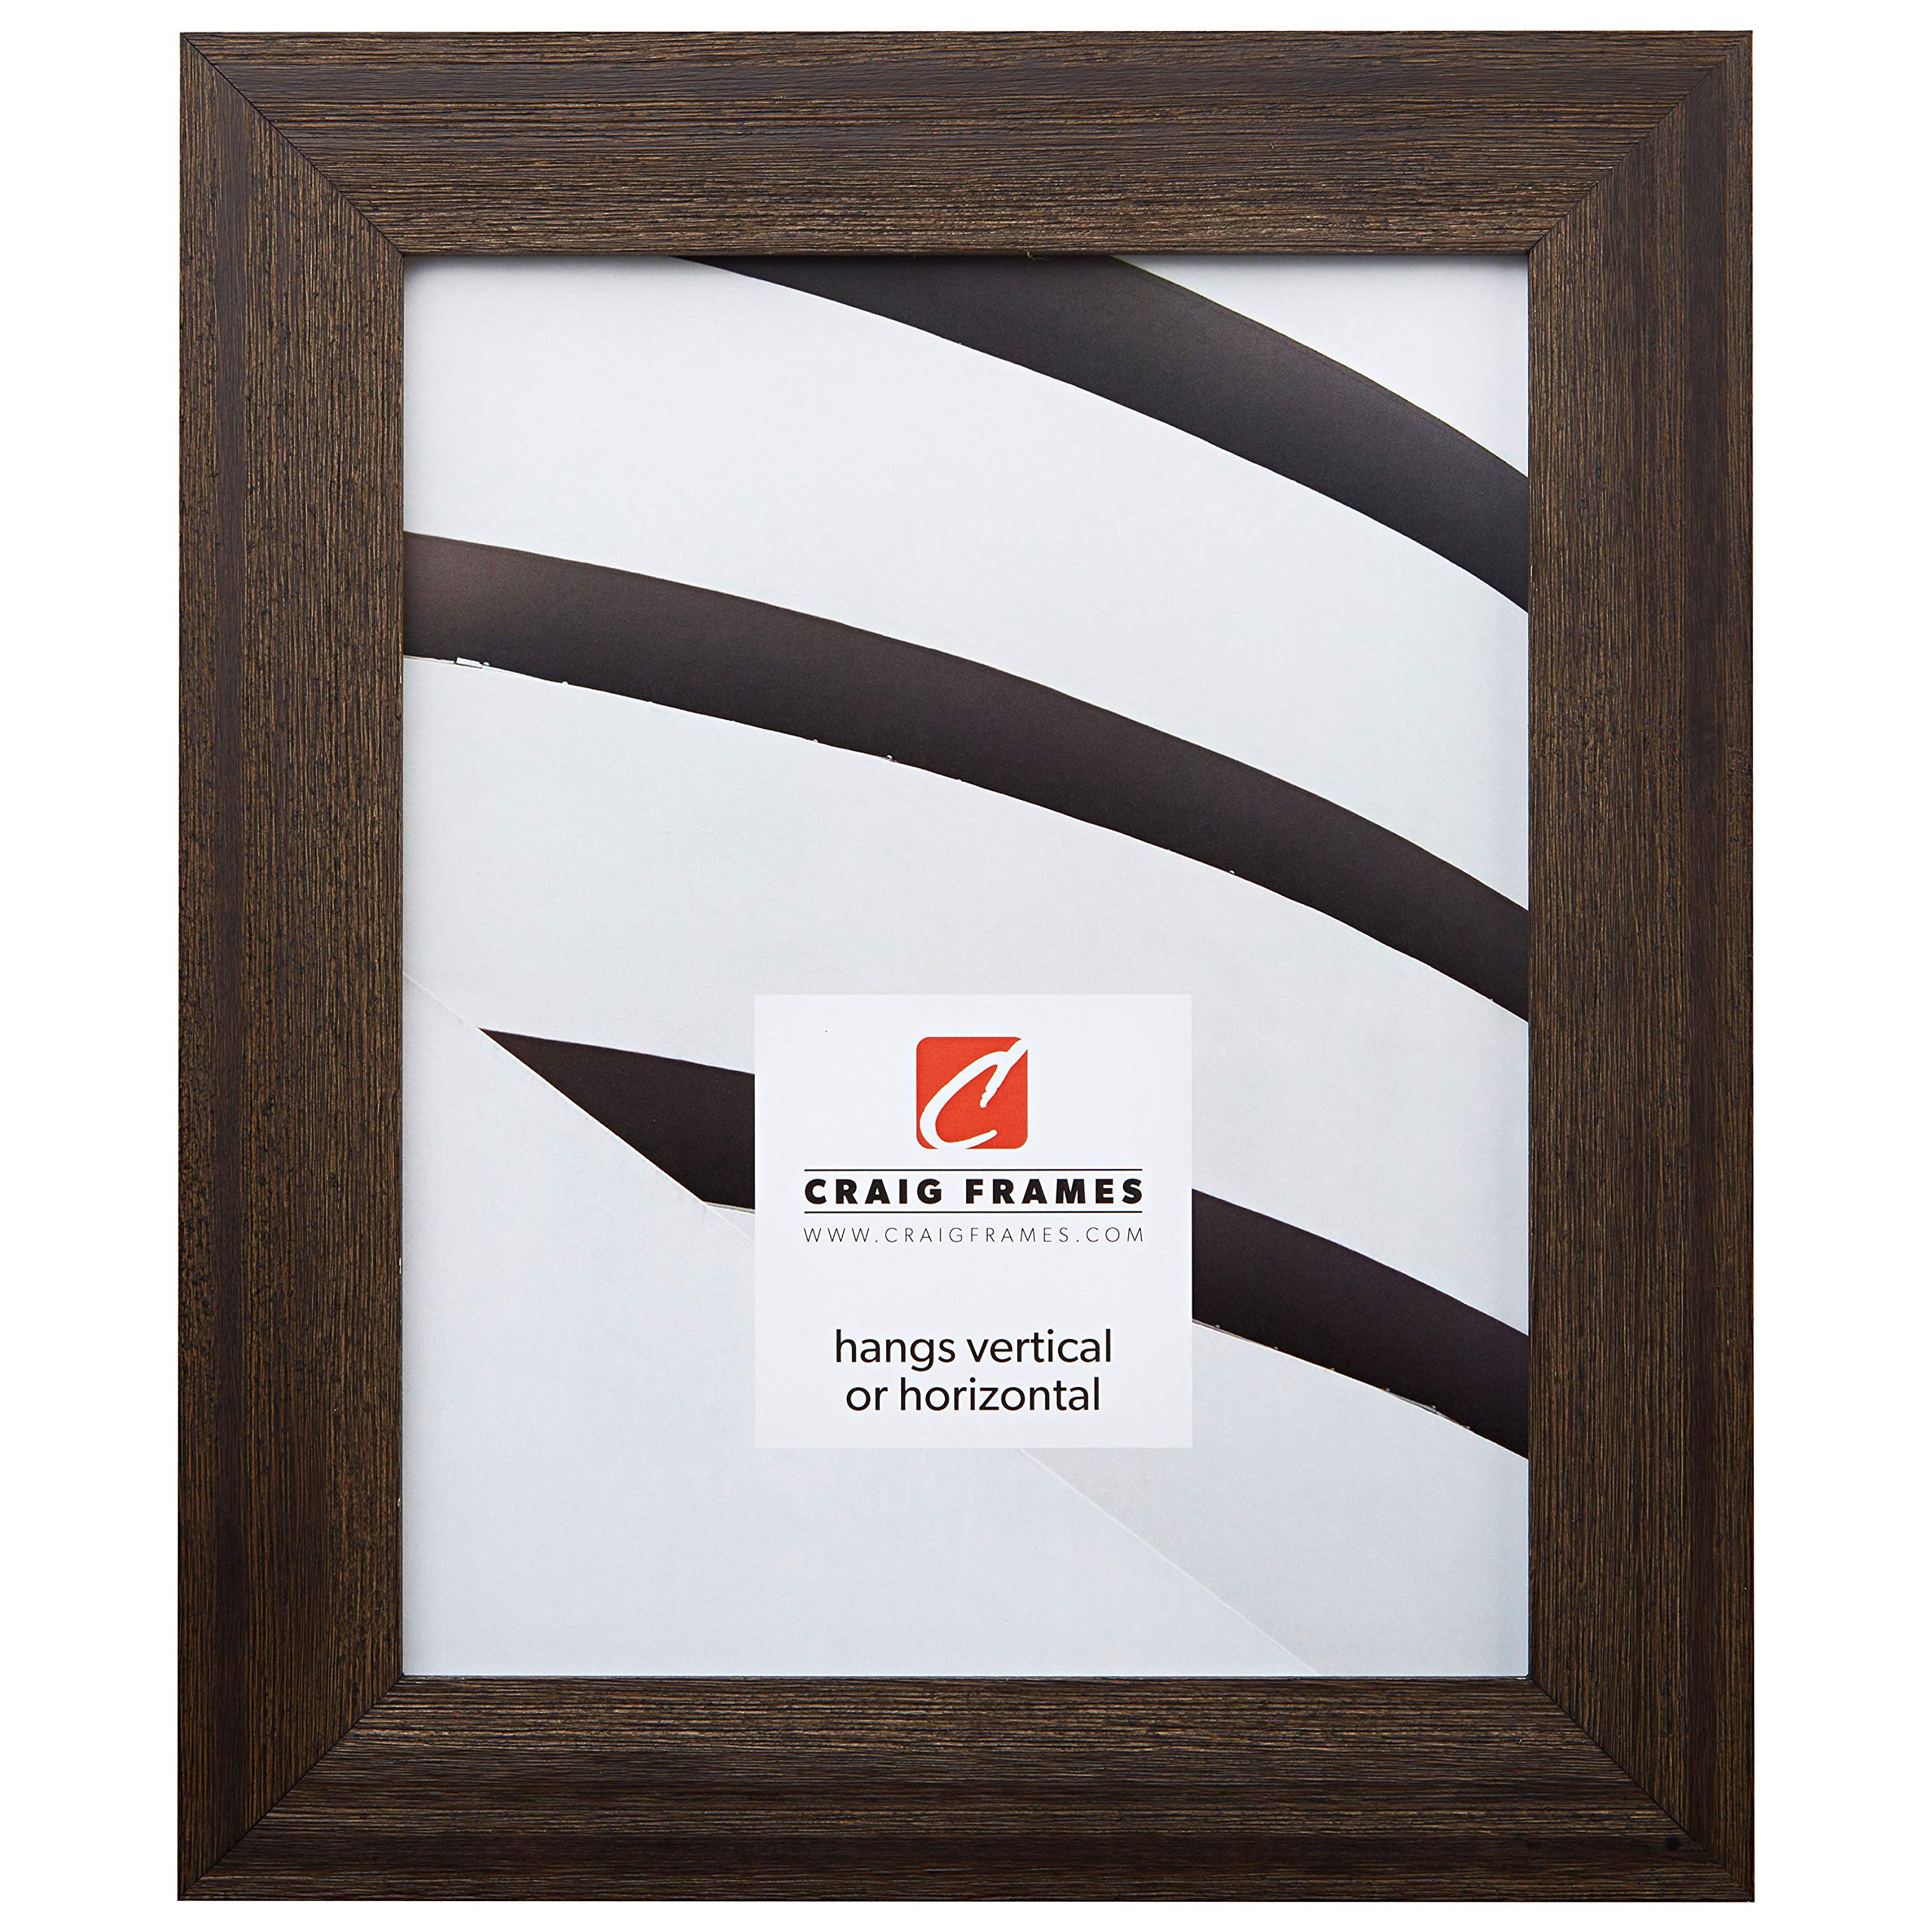 Craig Frames 15DRIFTWOODBK 22 by 34-Inch Picture Frame, Wood Grain Finish, 1.5-Inch Wide, Distressed Black